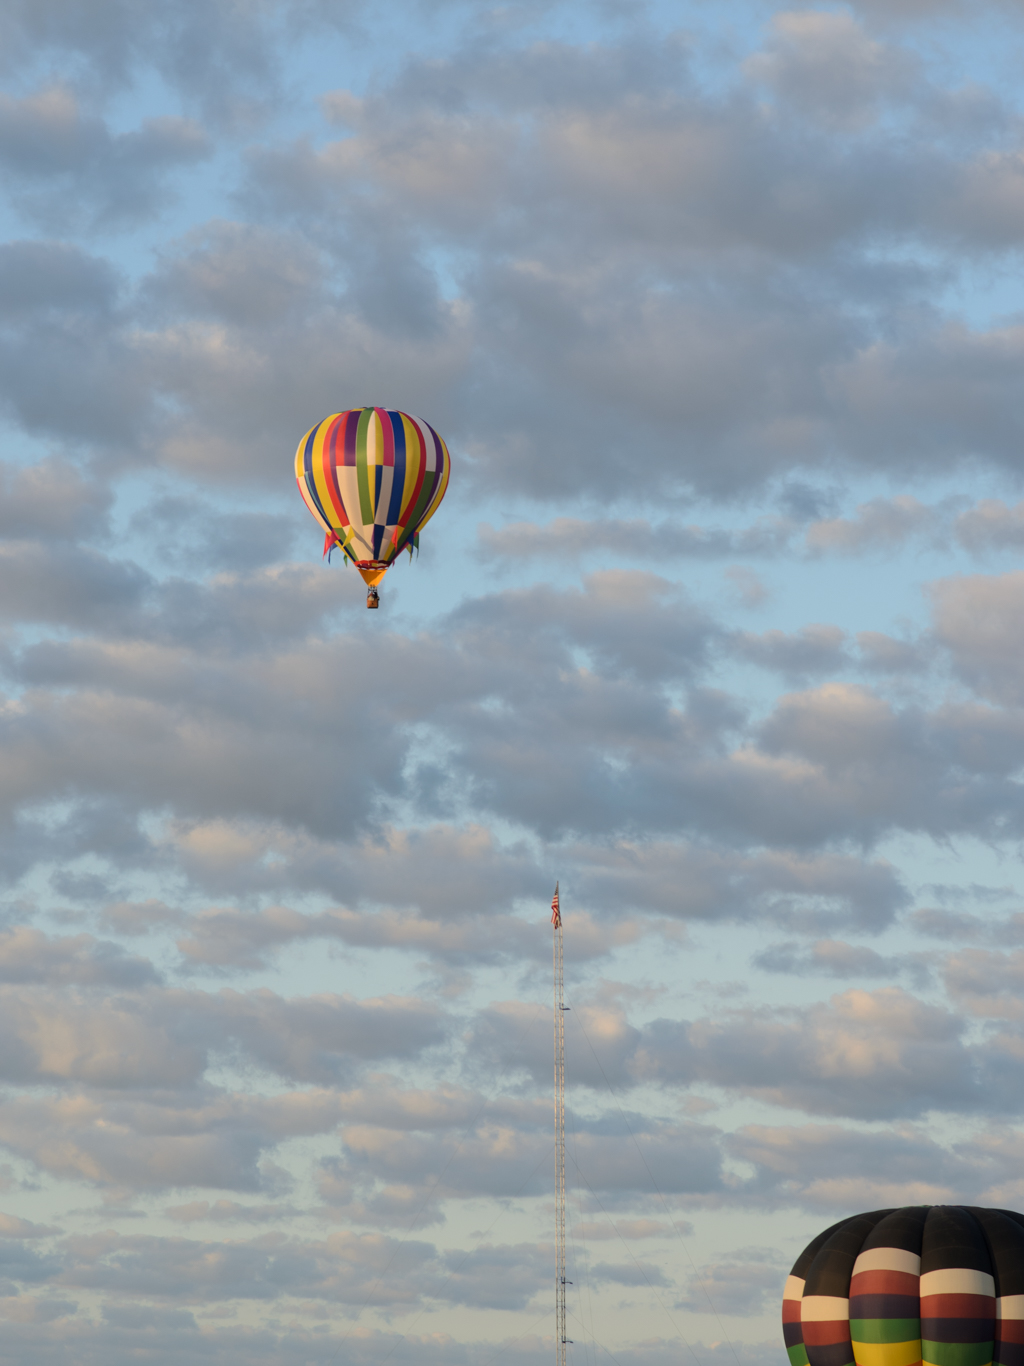 32nd annual New Jersey Festival of Ballooning, wpid14580 NIKON D5100 20140725 0957 Edit